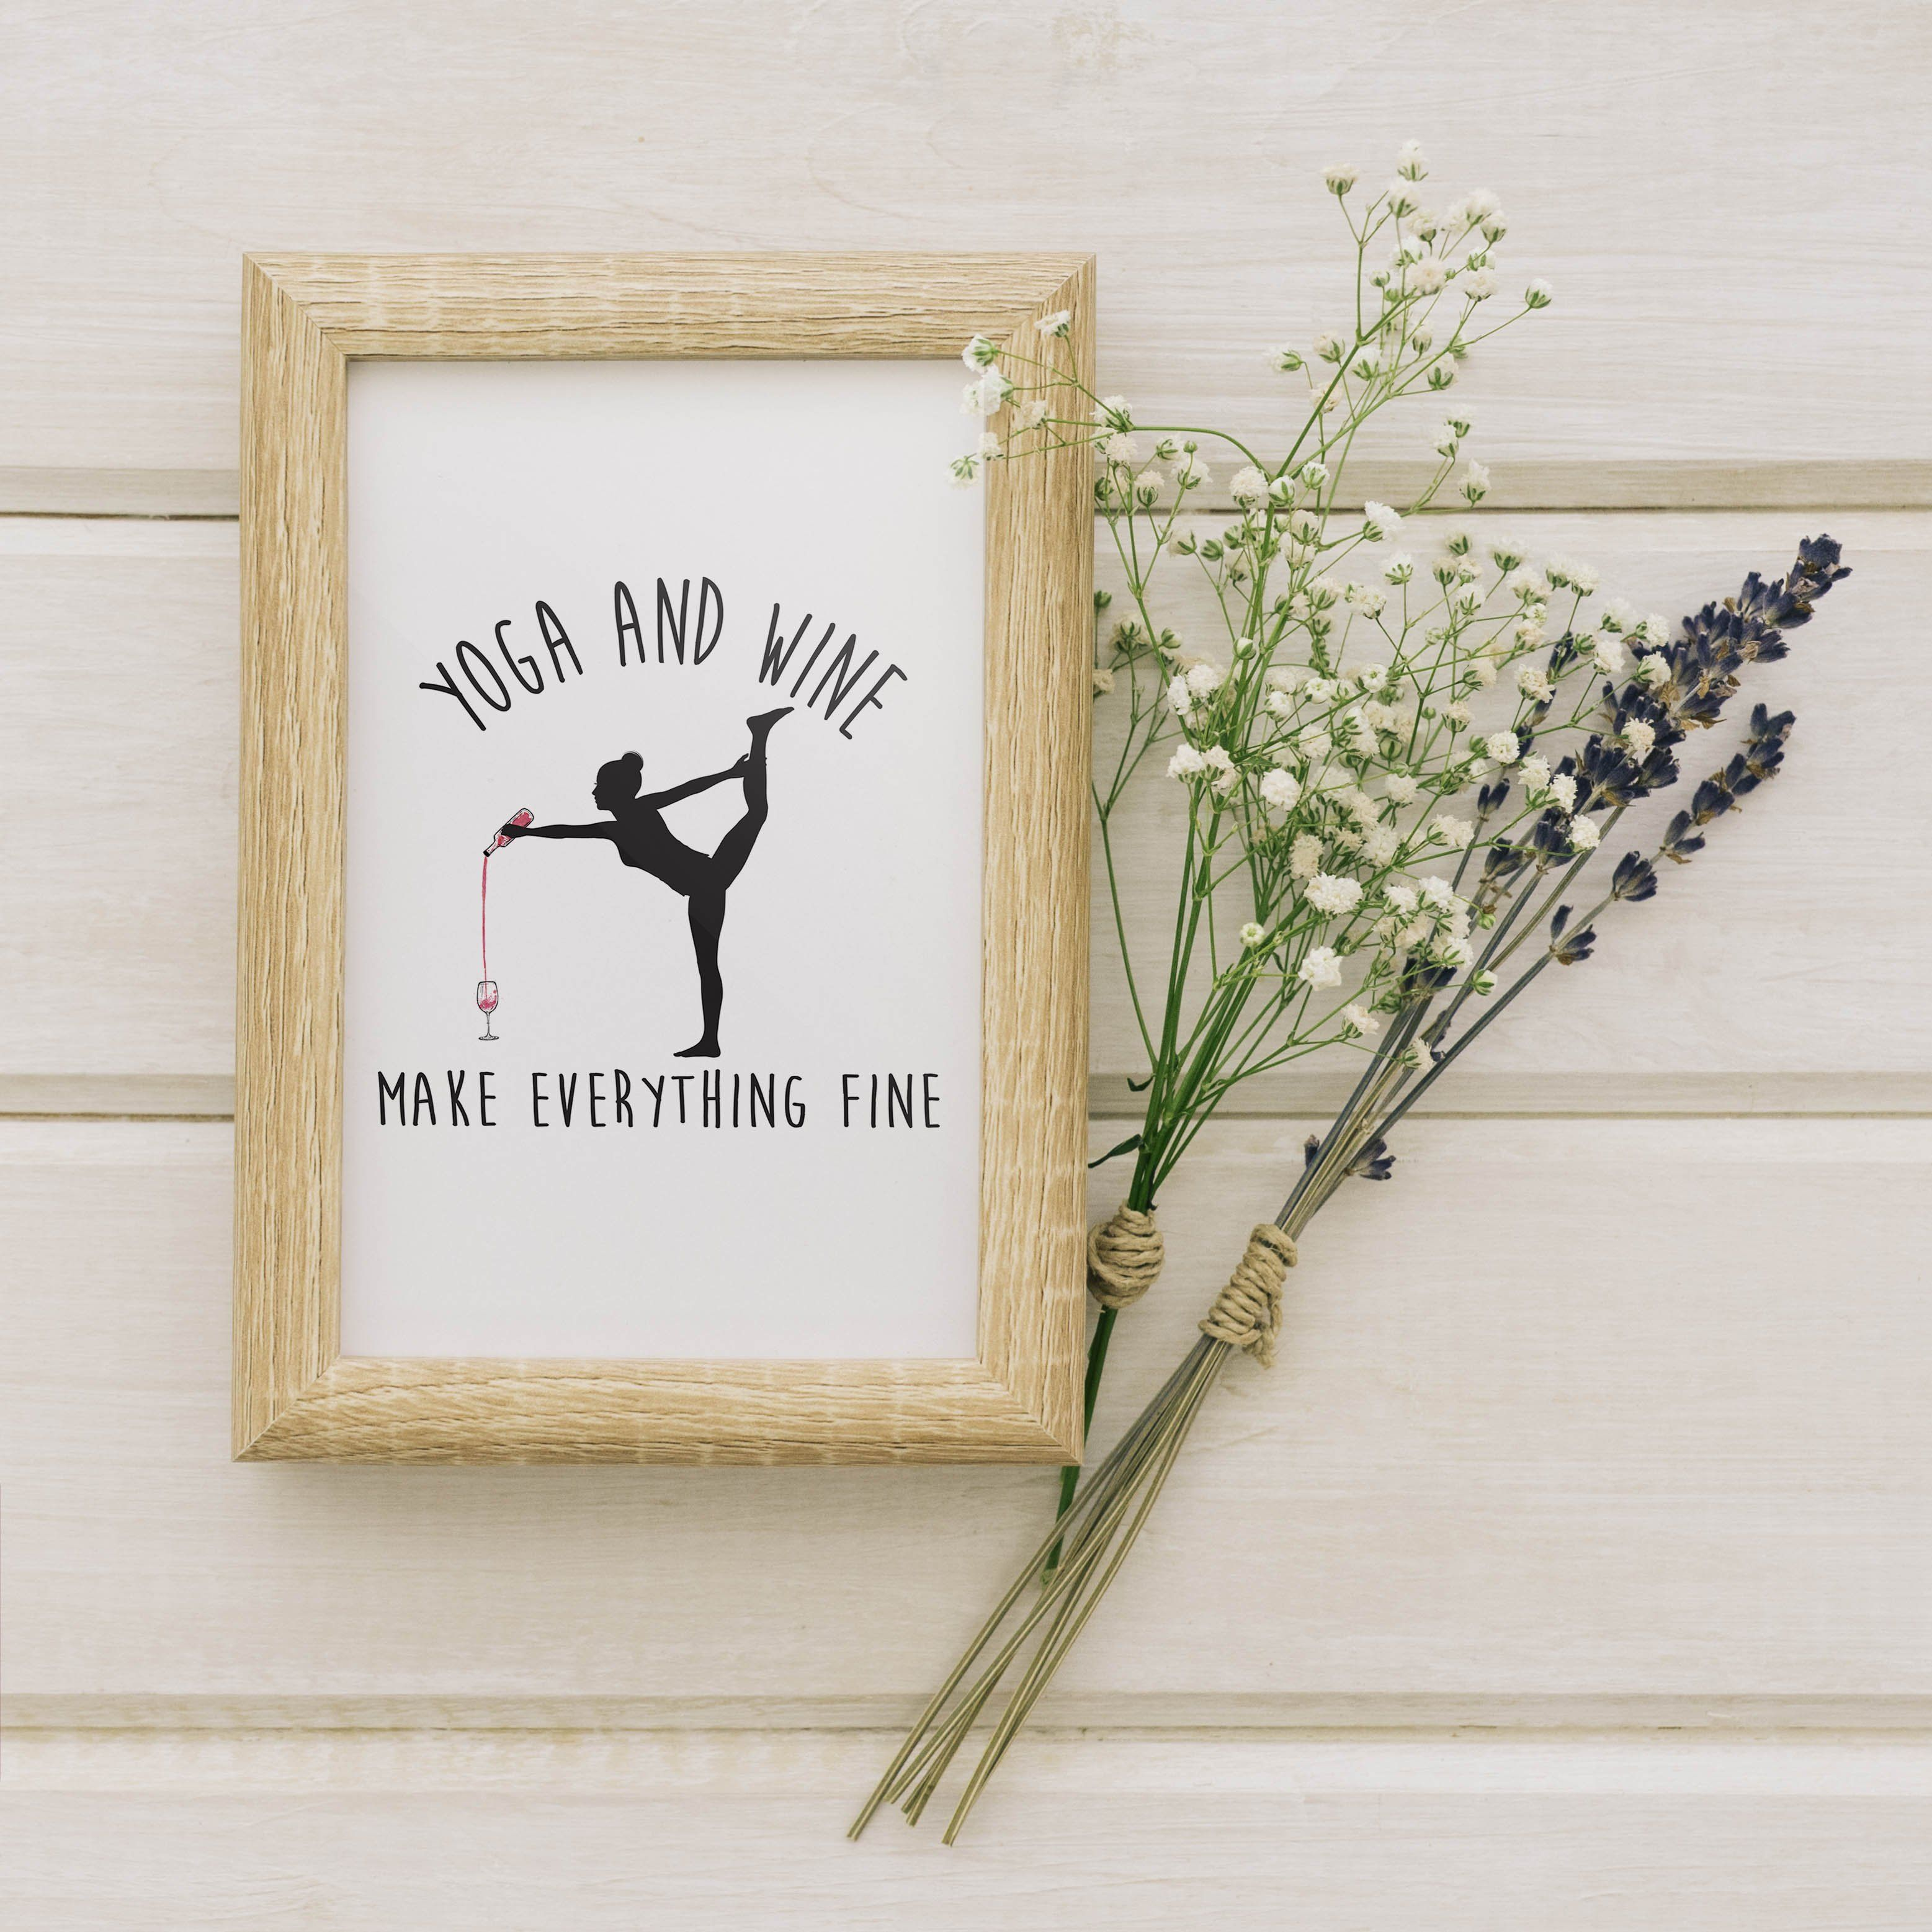 Yoga And Wine Make Everything Fine Digital Download | Yoga Art | Yoga Poster